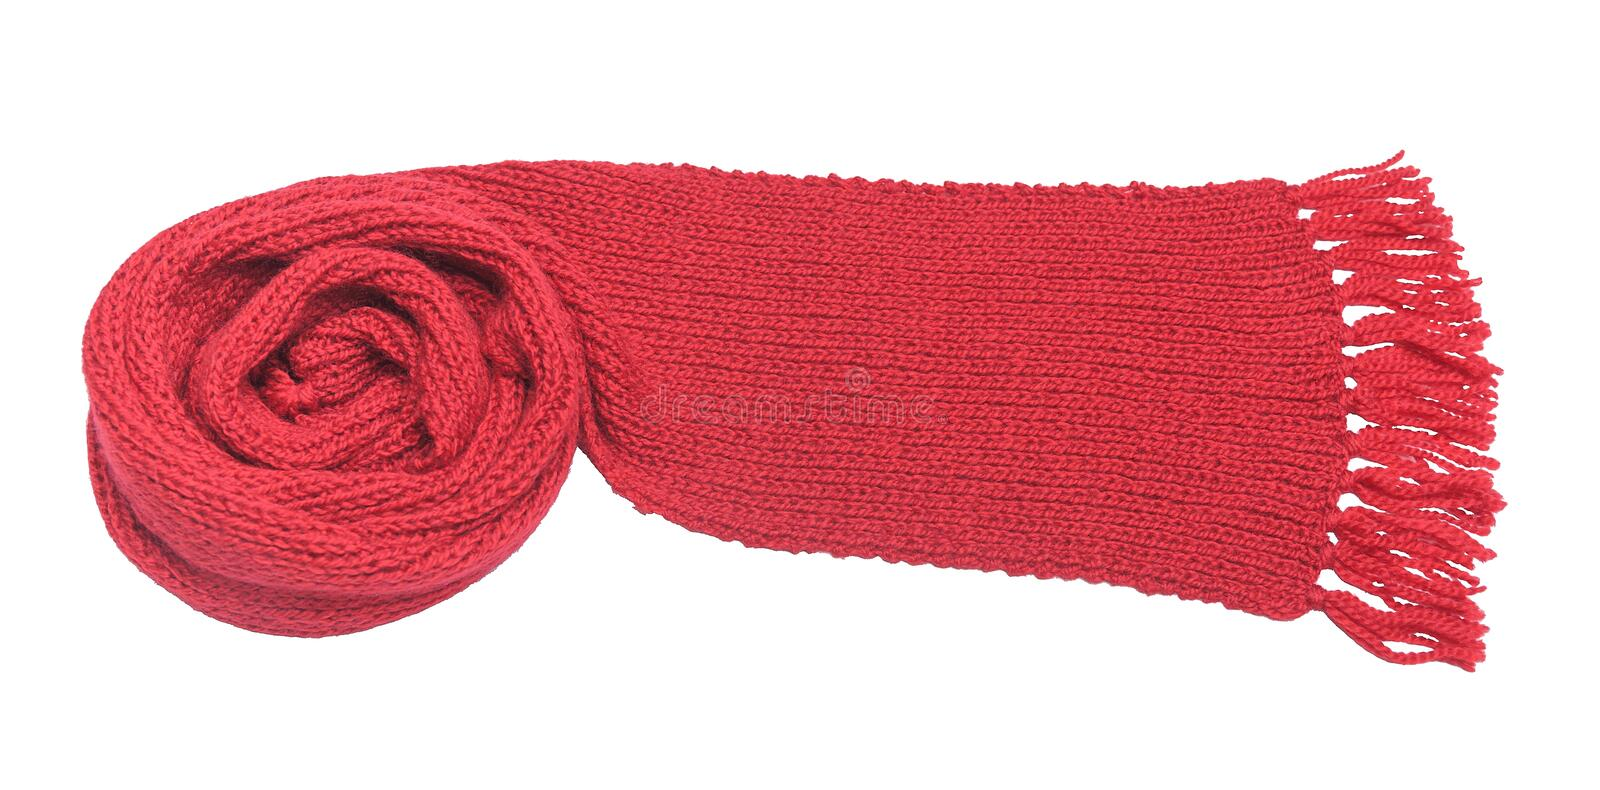 Red scarf on a white background. Red knitted scarf on a white background royalty free stock photography